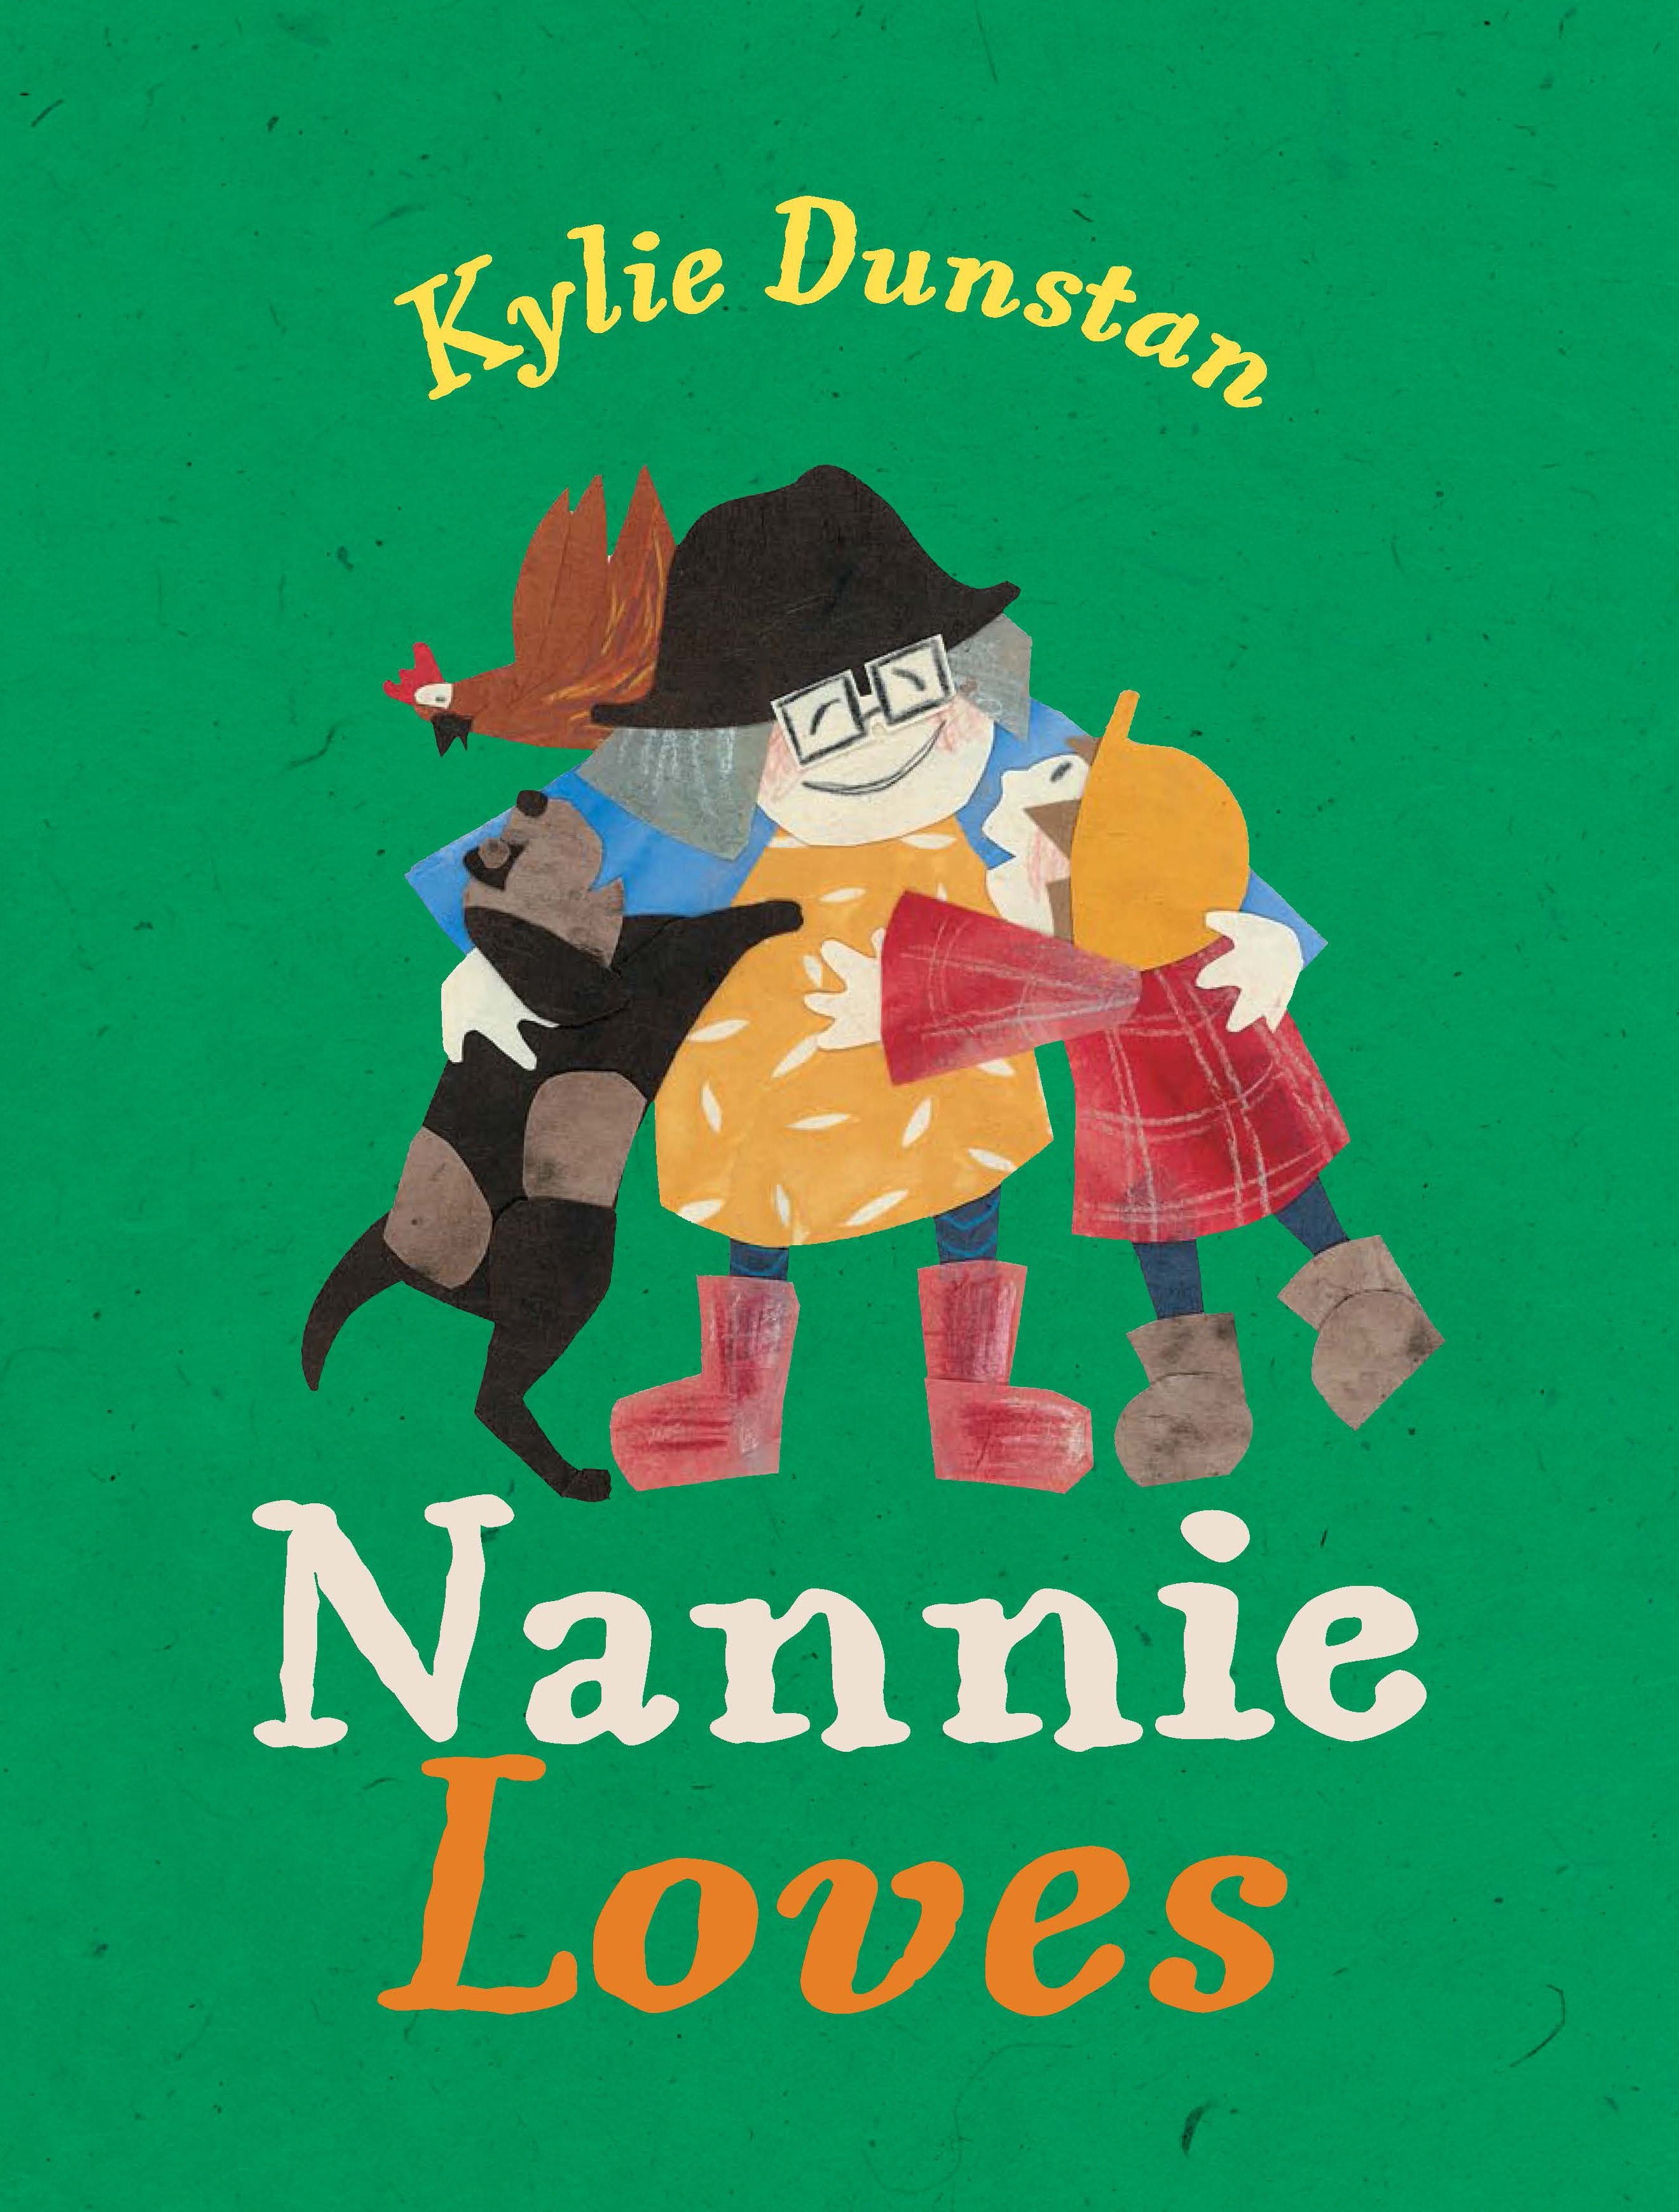 Nannie Loves by Kylie Dunstan, ISBN: 9781921504839